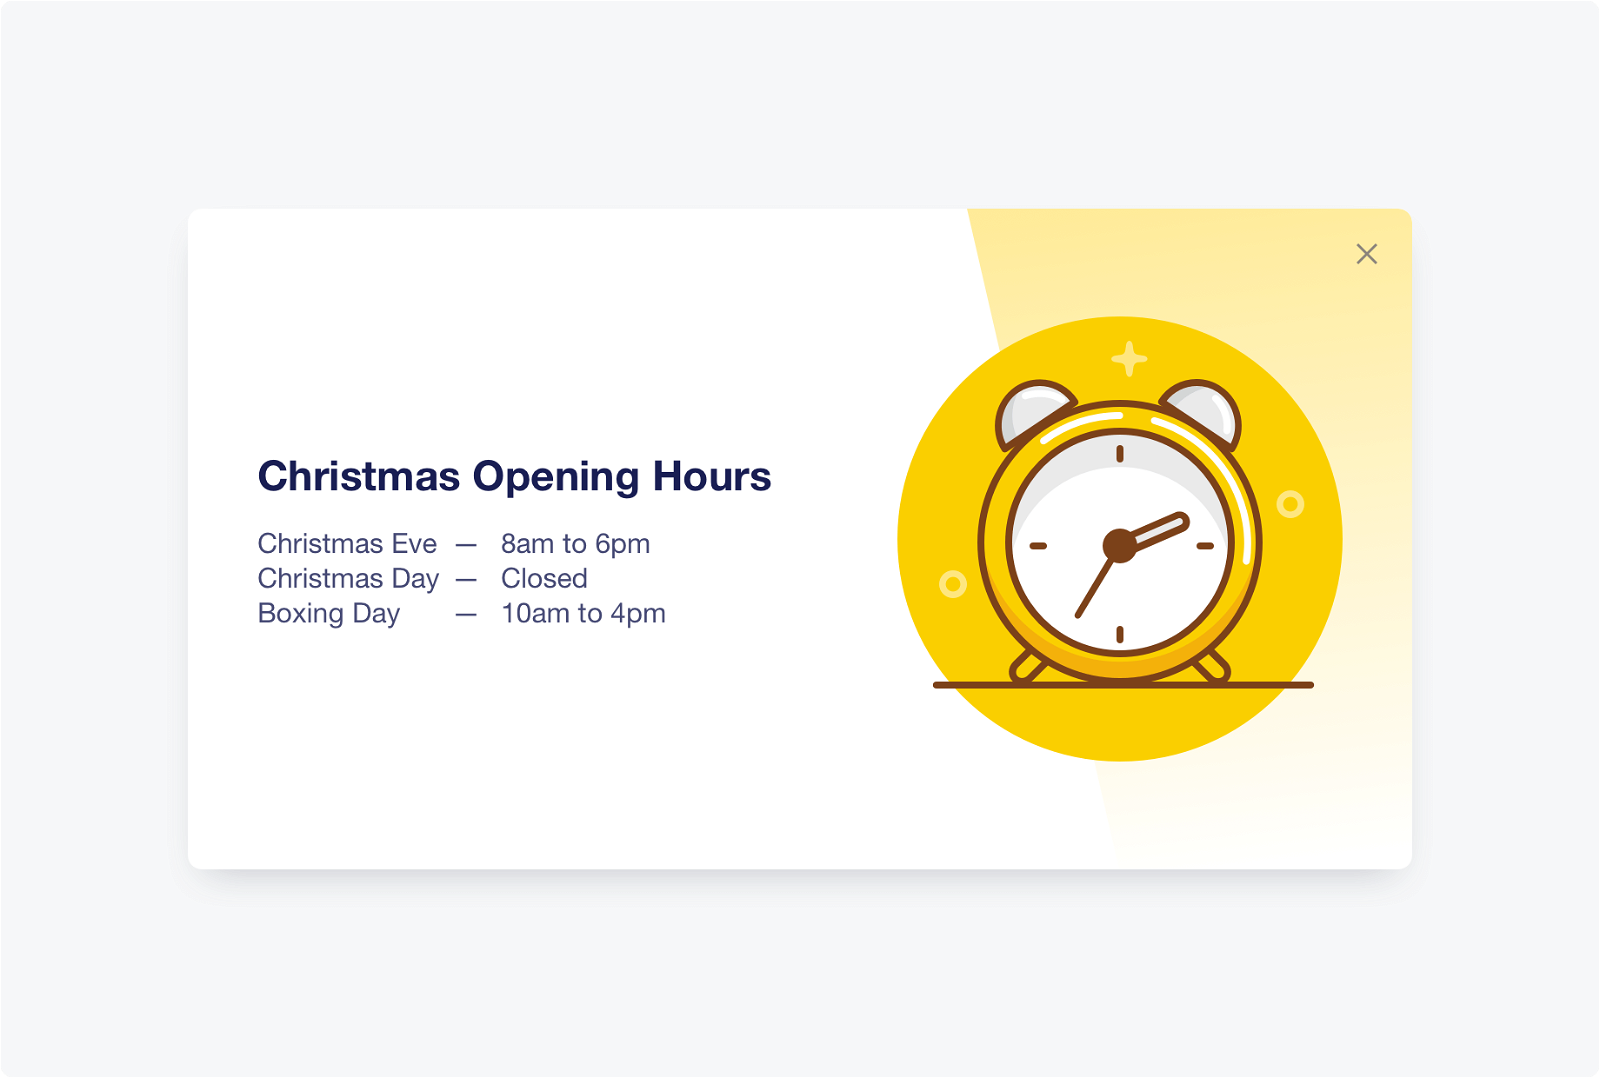 New Christmas icons for your website popups!